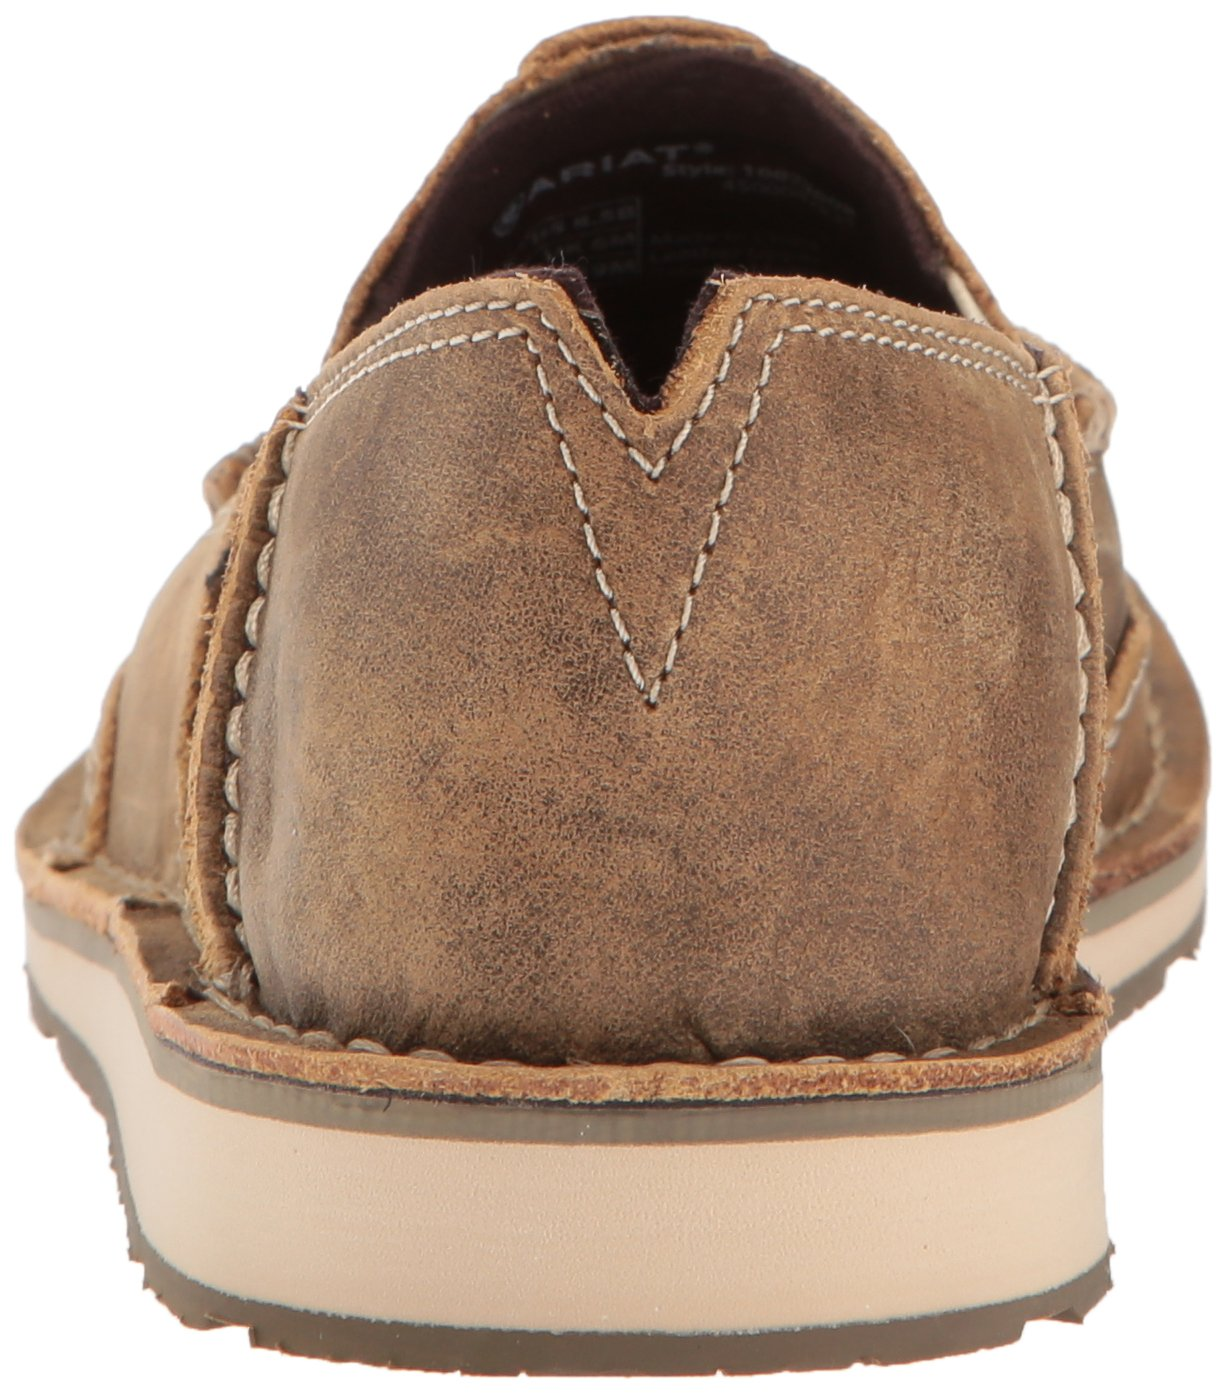 Ariat Women's Cruiser Slip-on Shoe Bomber B07121CKTG 6 B(M) US|Brown Bomber Shoe f8411c